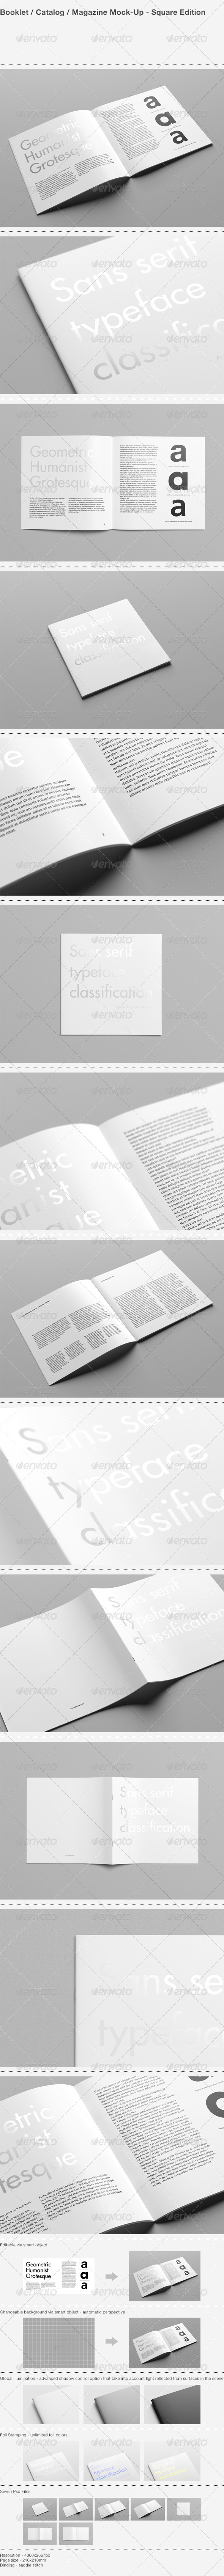 Booklet / Catalog / Magazine Mock-Up Square - Magazines Print